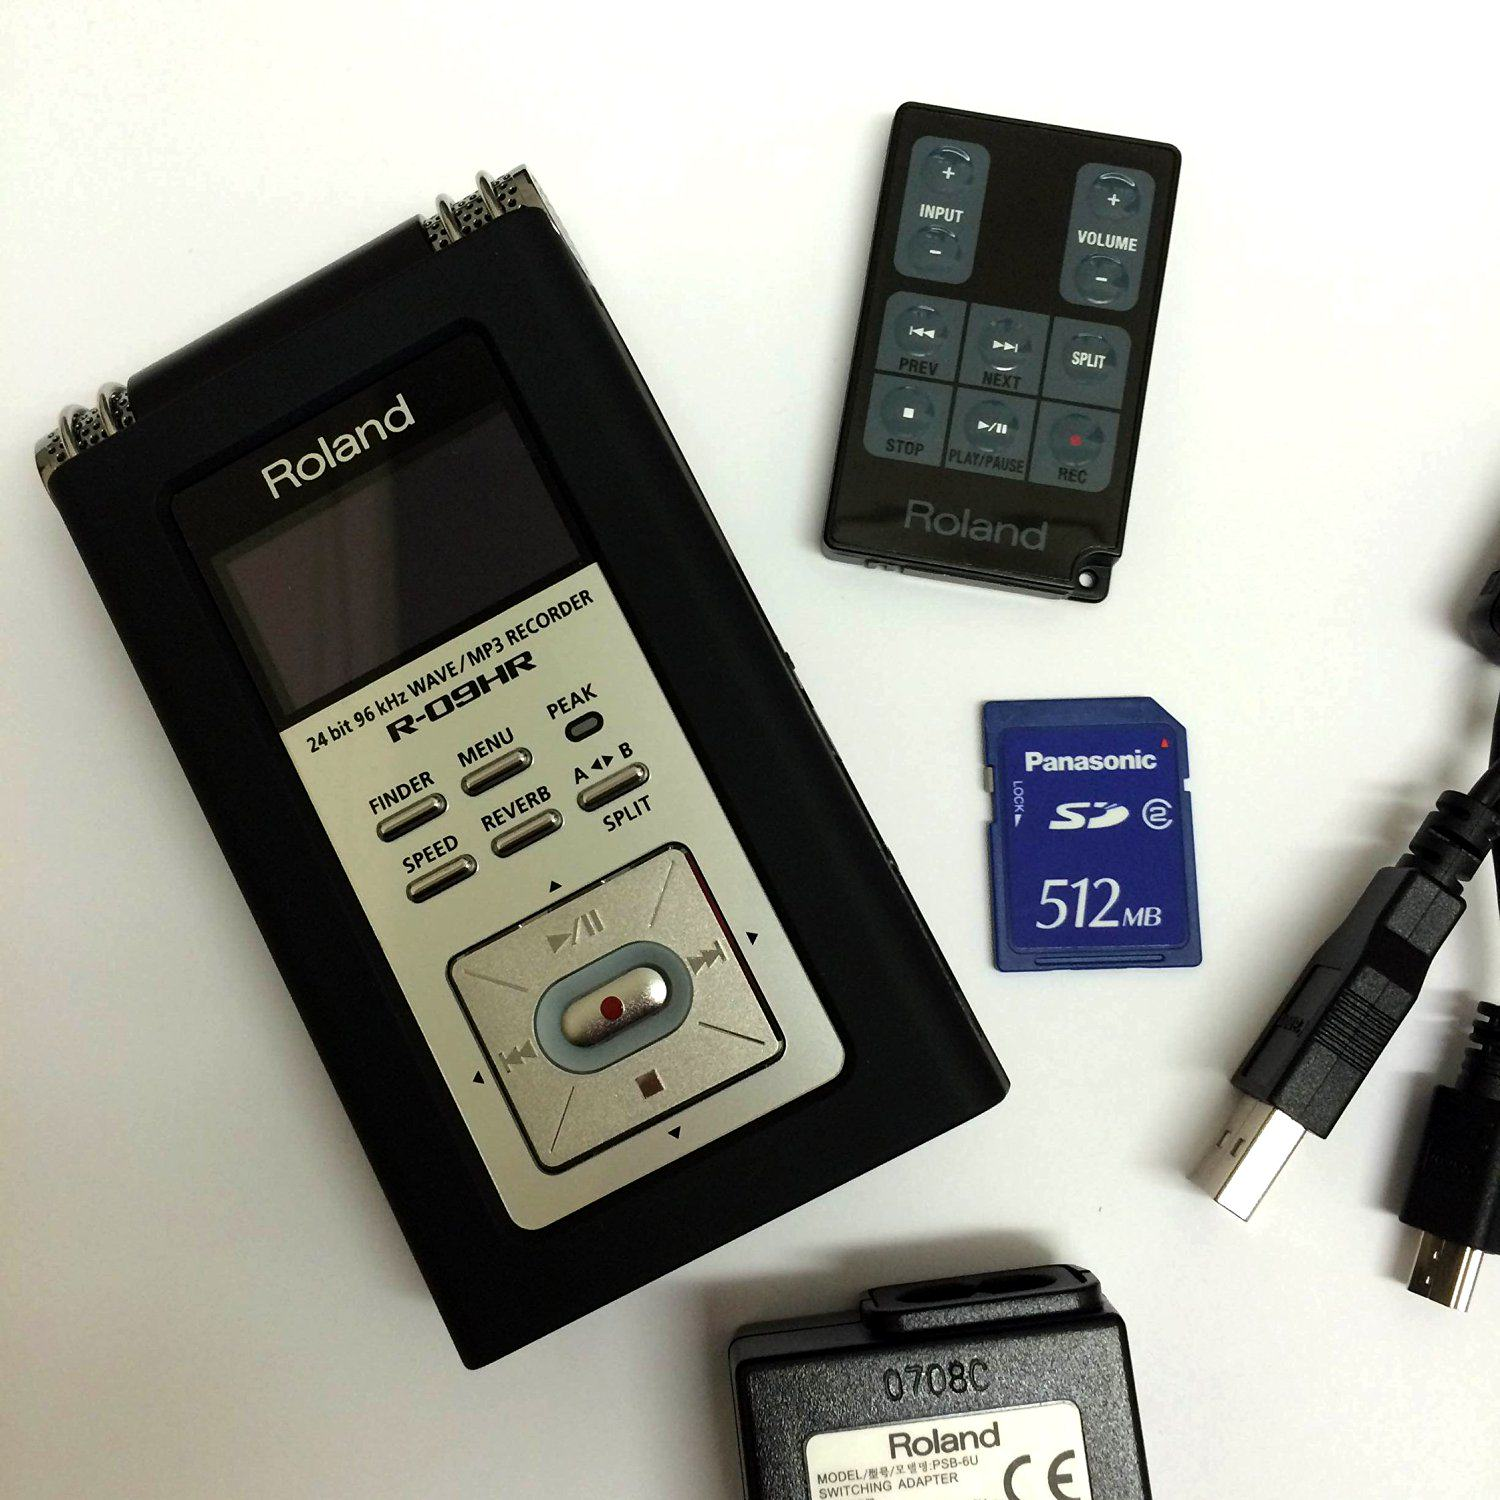 roland-edirol-r-09-hr-digital-recorder